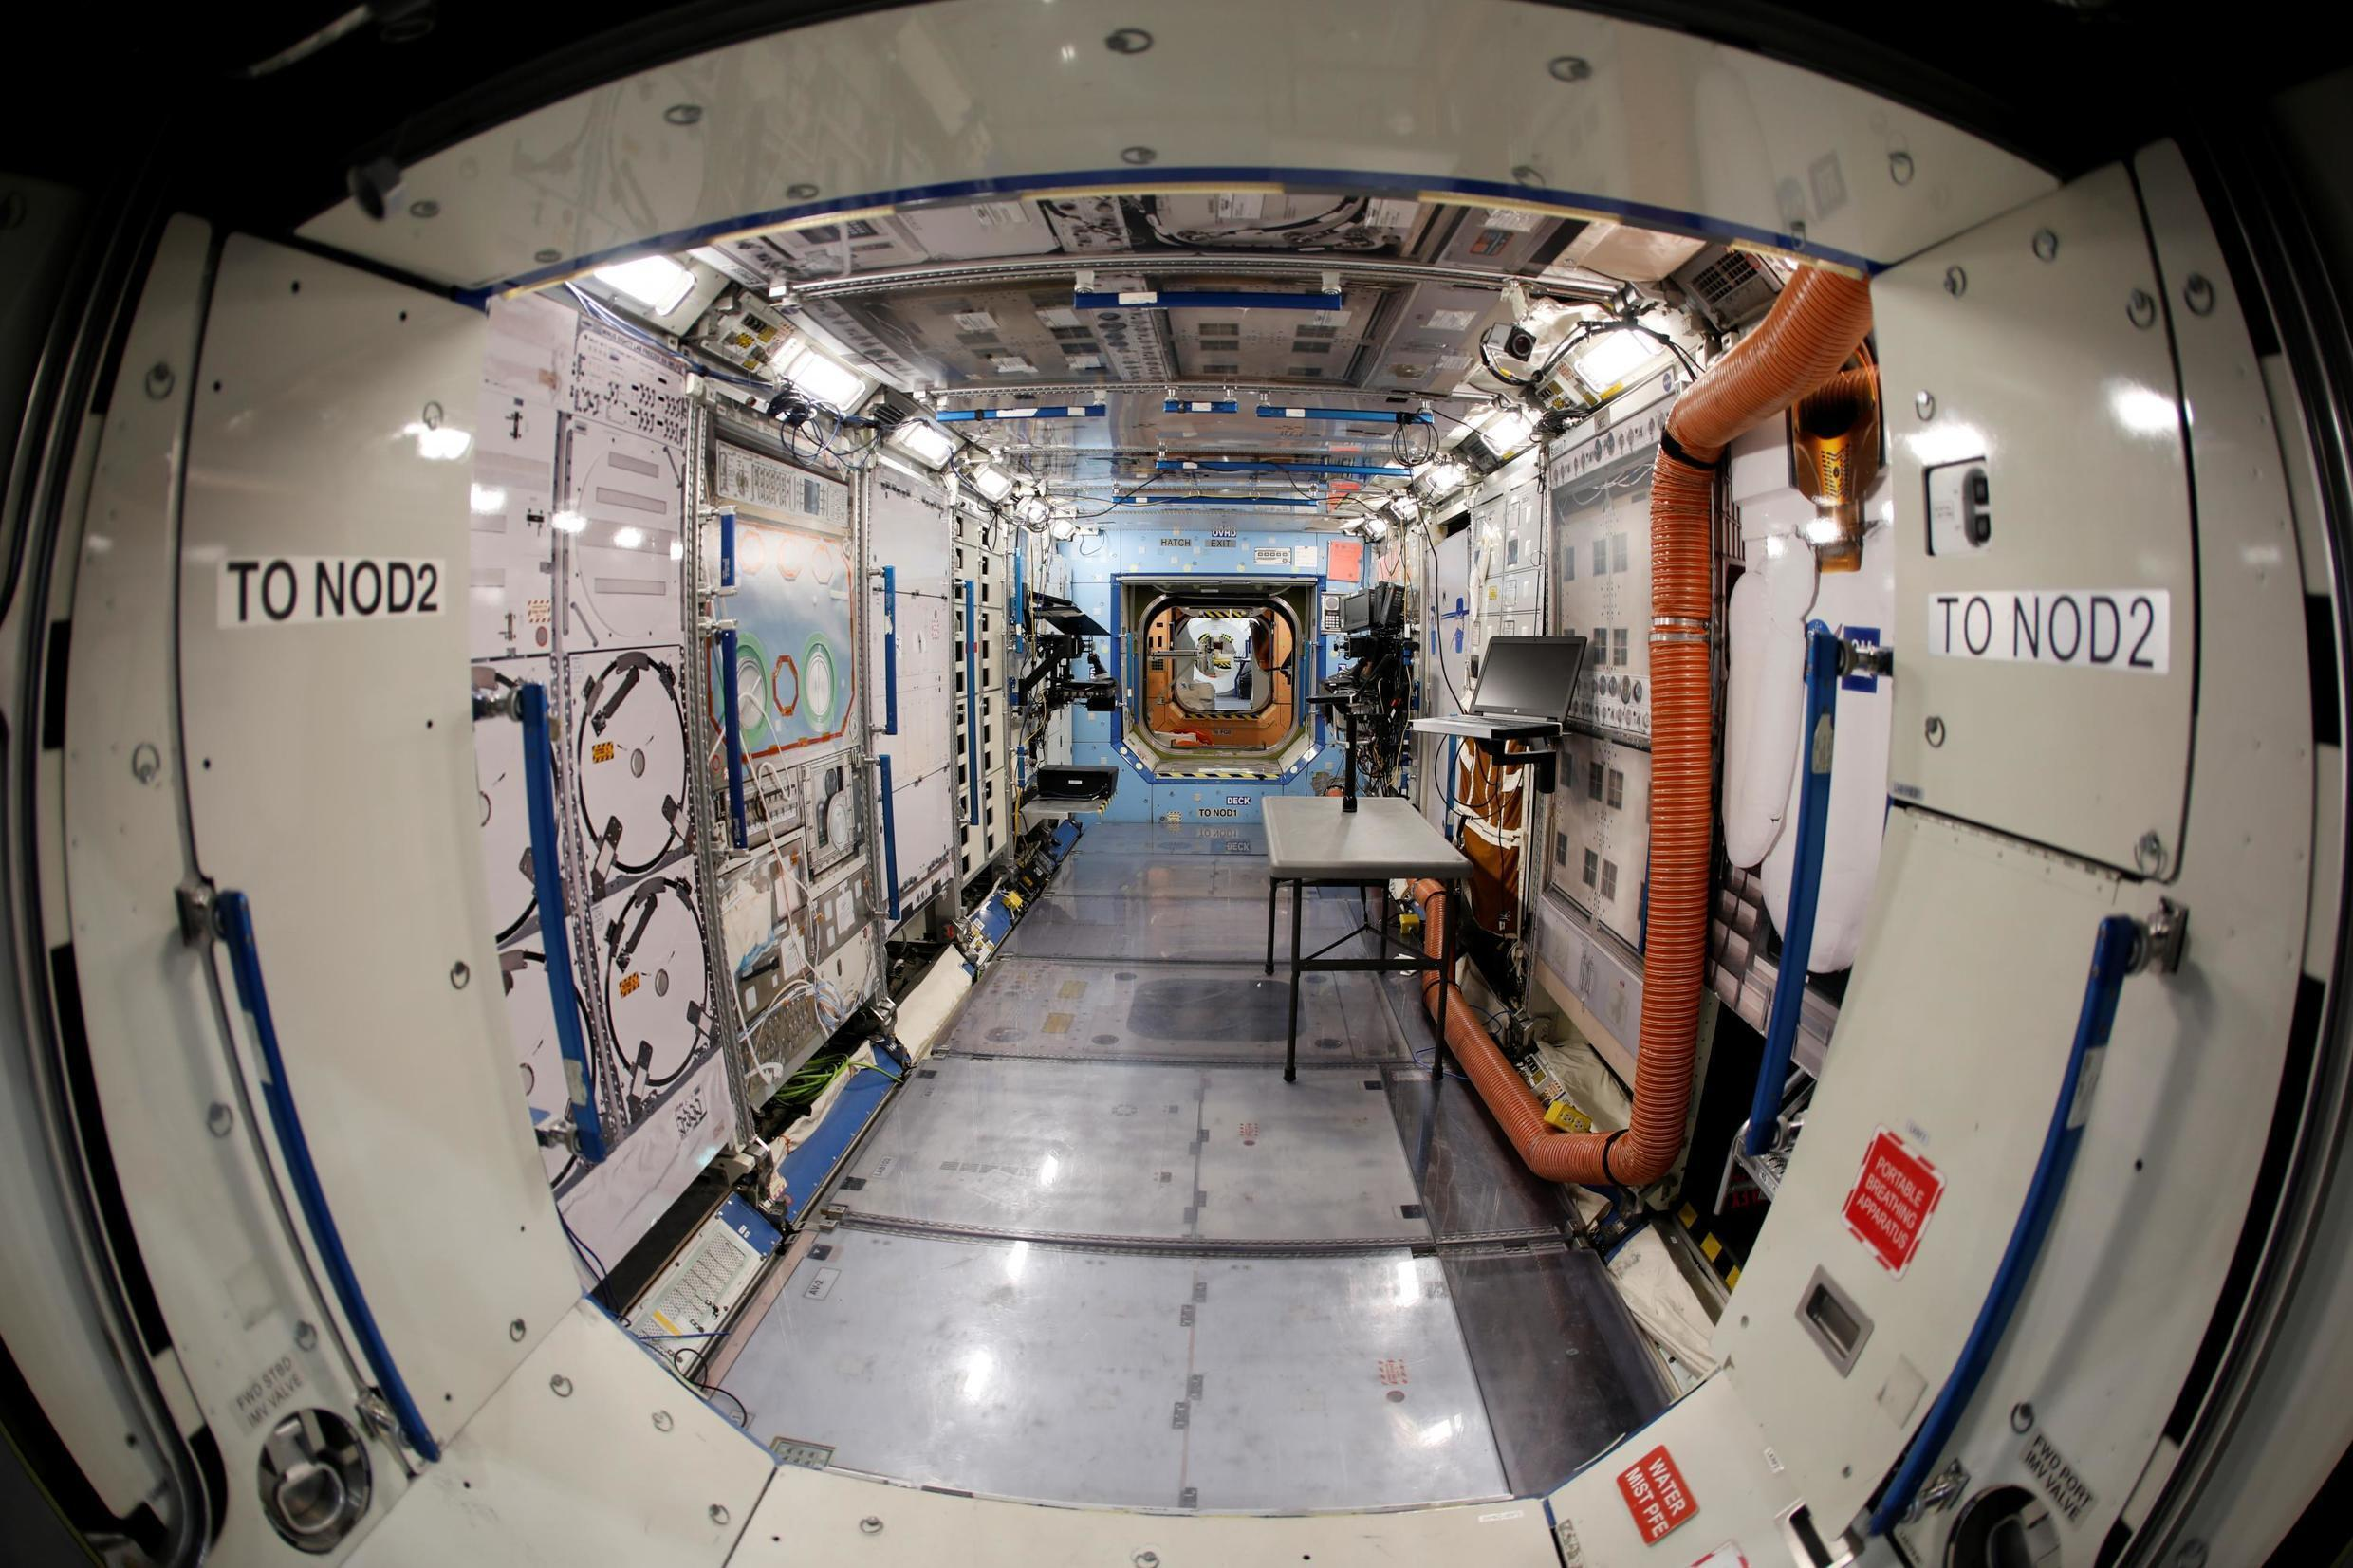 A view inside a replica science lab of the International Space Station at Johnson Space Center in Houston, Texas, U.S., May 22, 2019